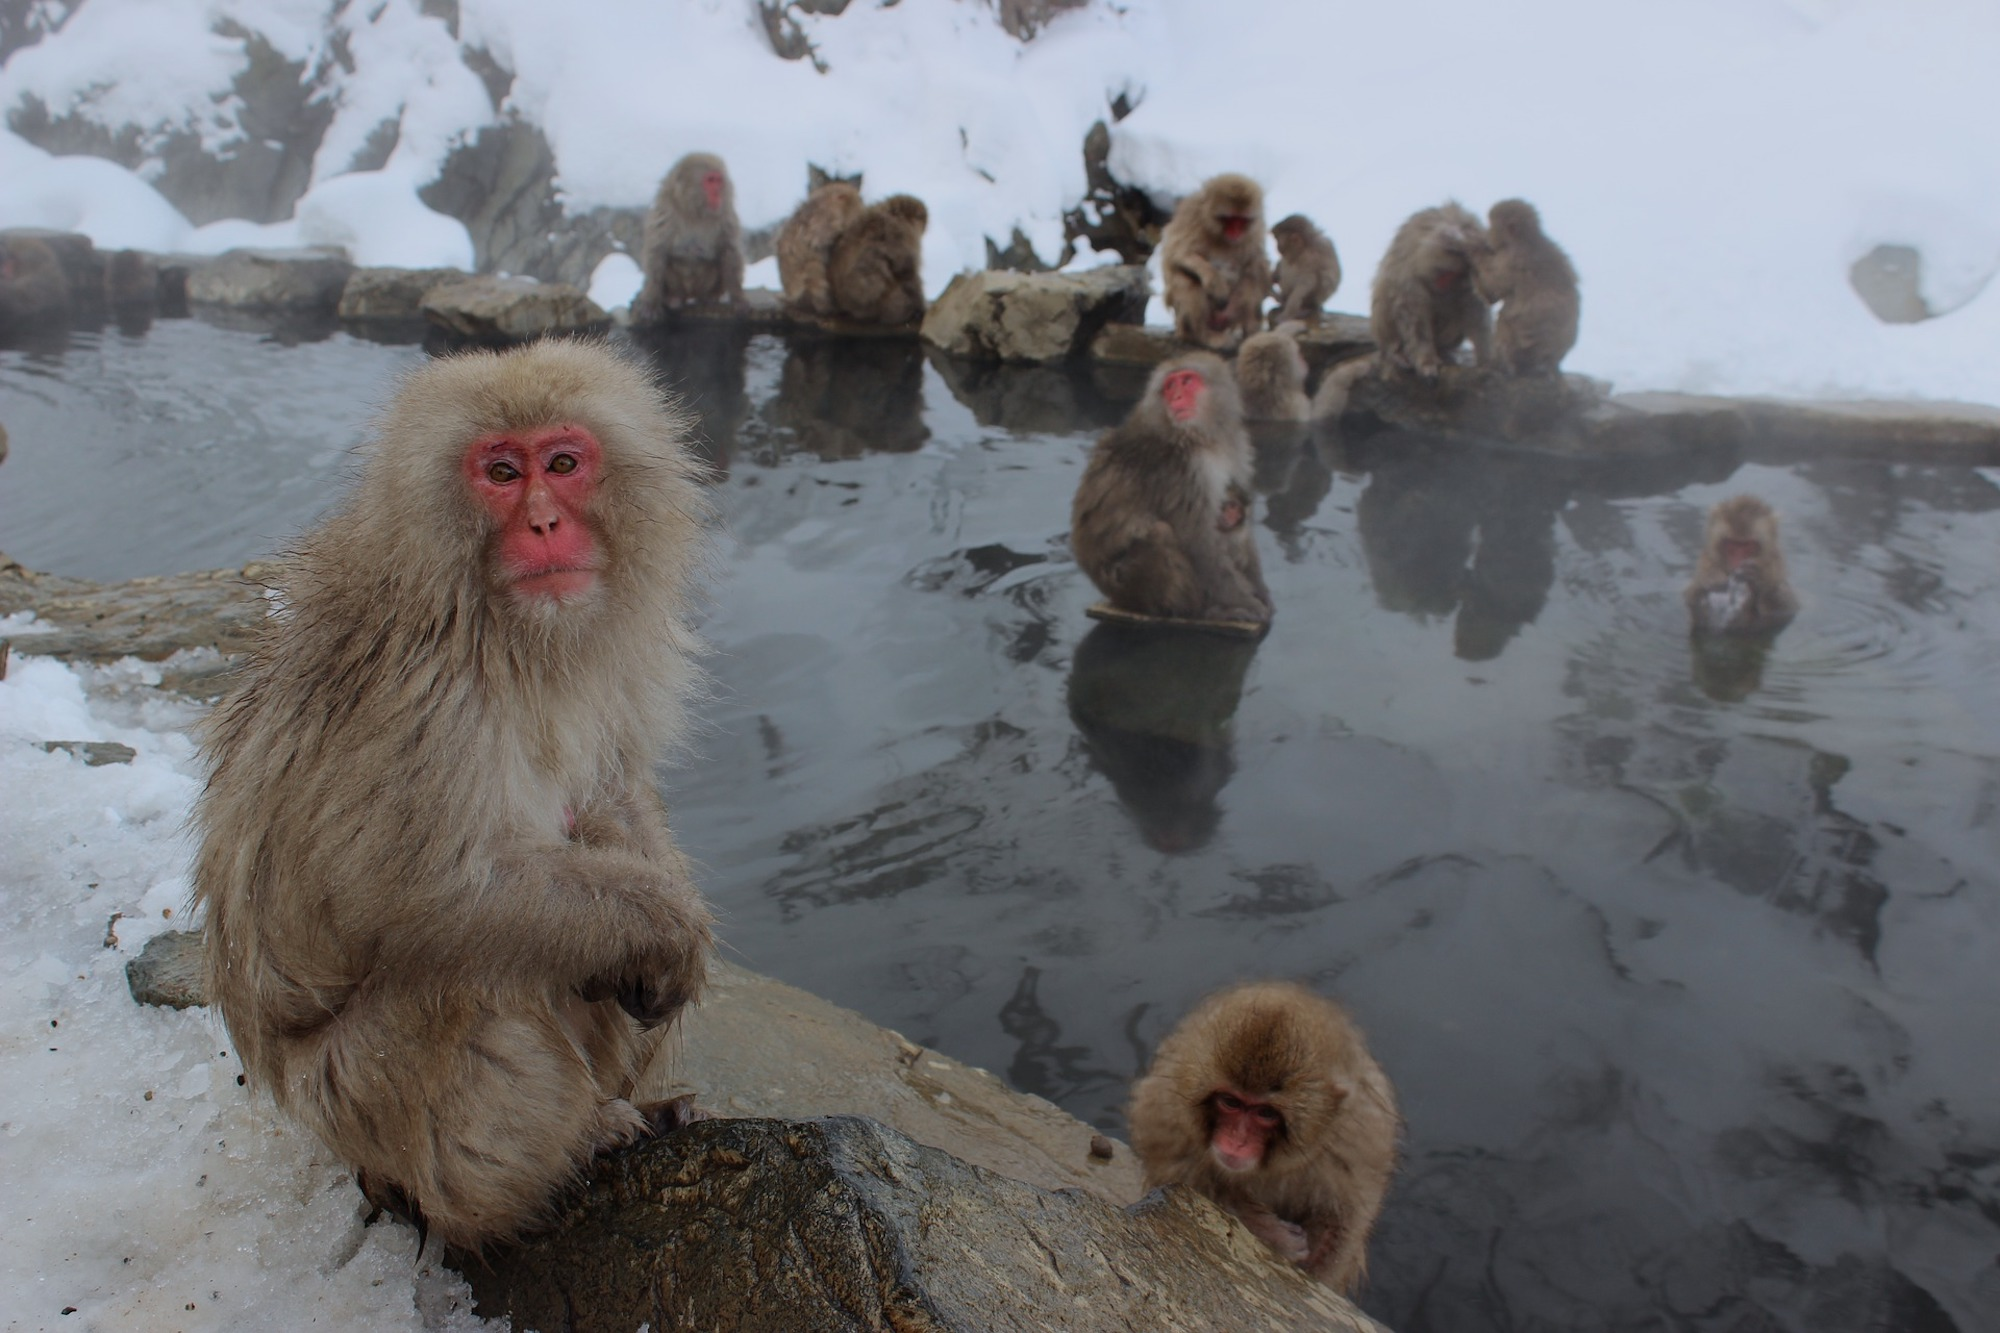 Visiting the Snow Monkeys in Japan